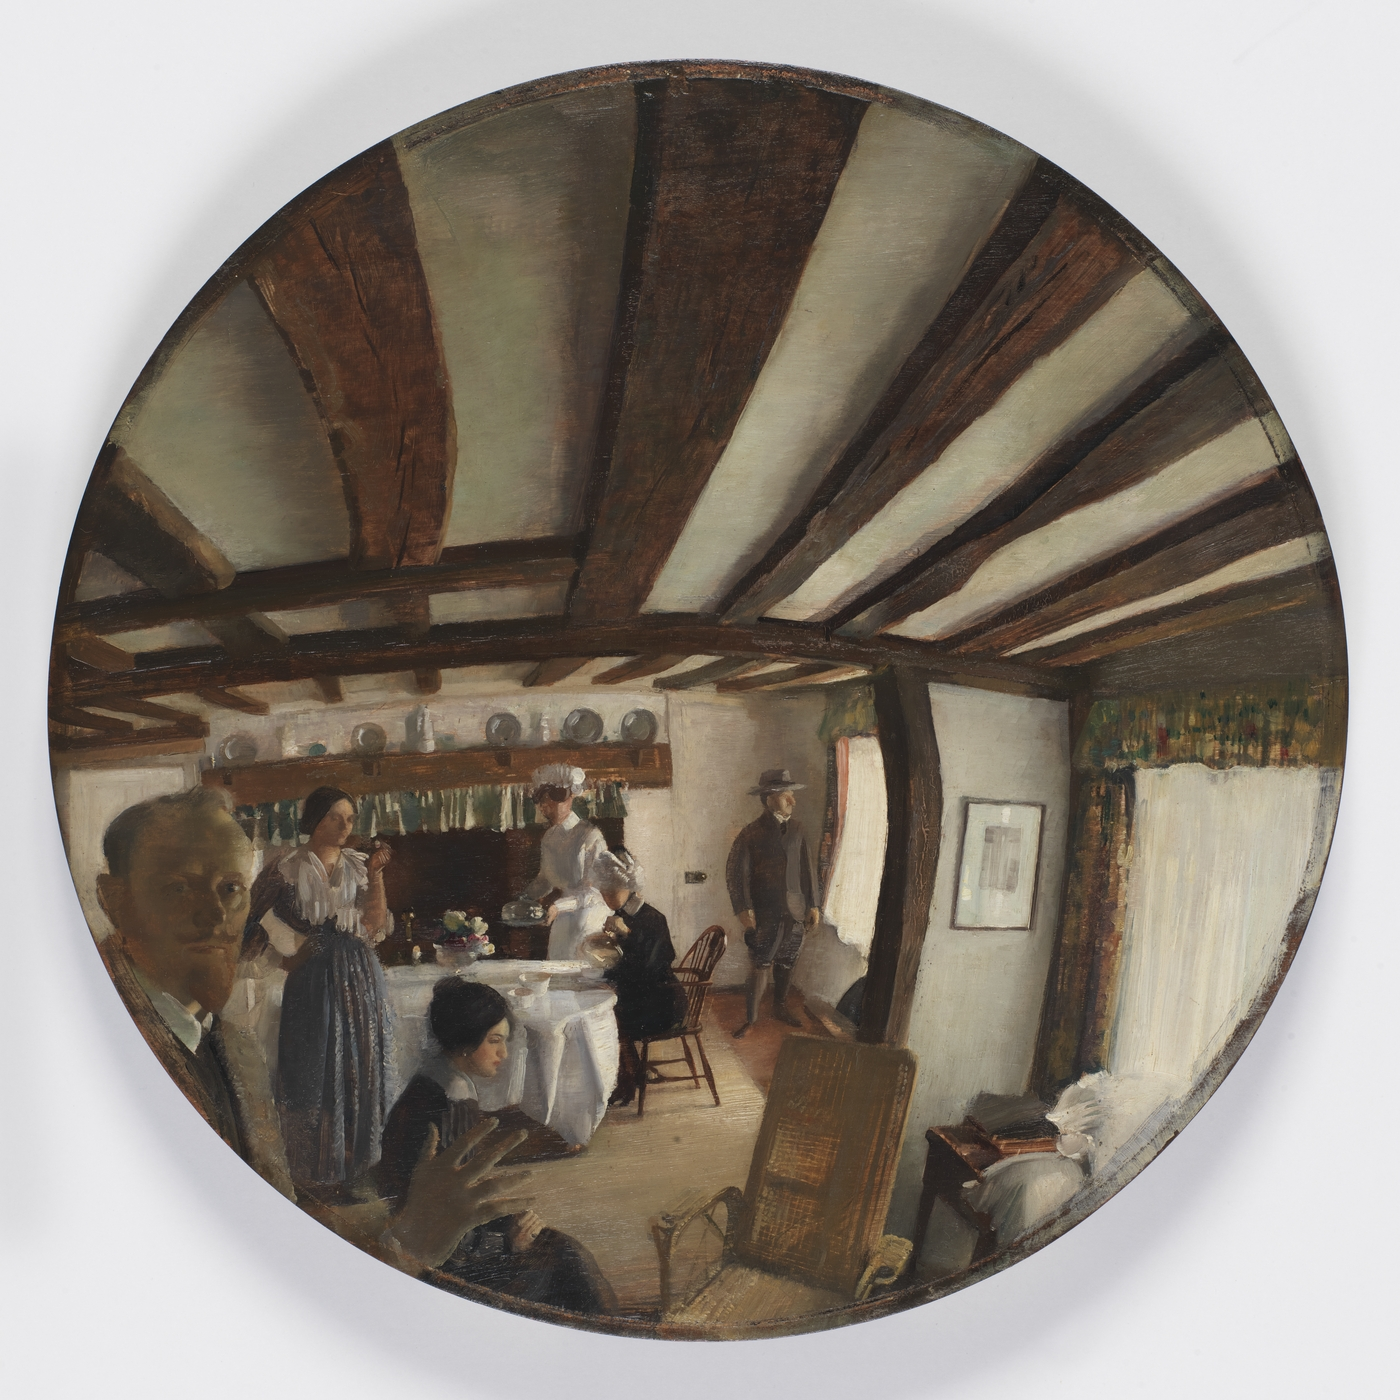 A painting in the shape of a circle, showing the scene of a tea room in a perspective similar to the modern fisheye lens.